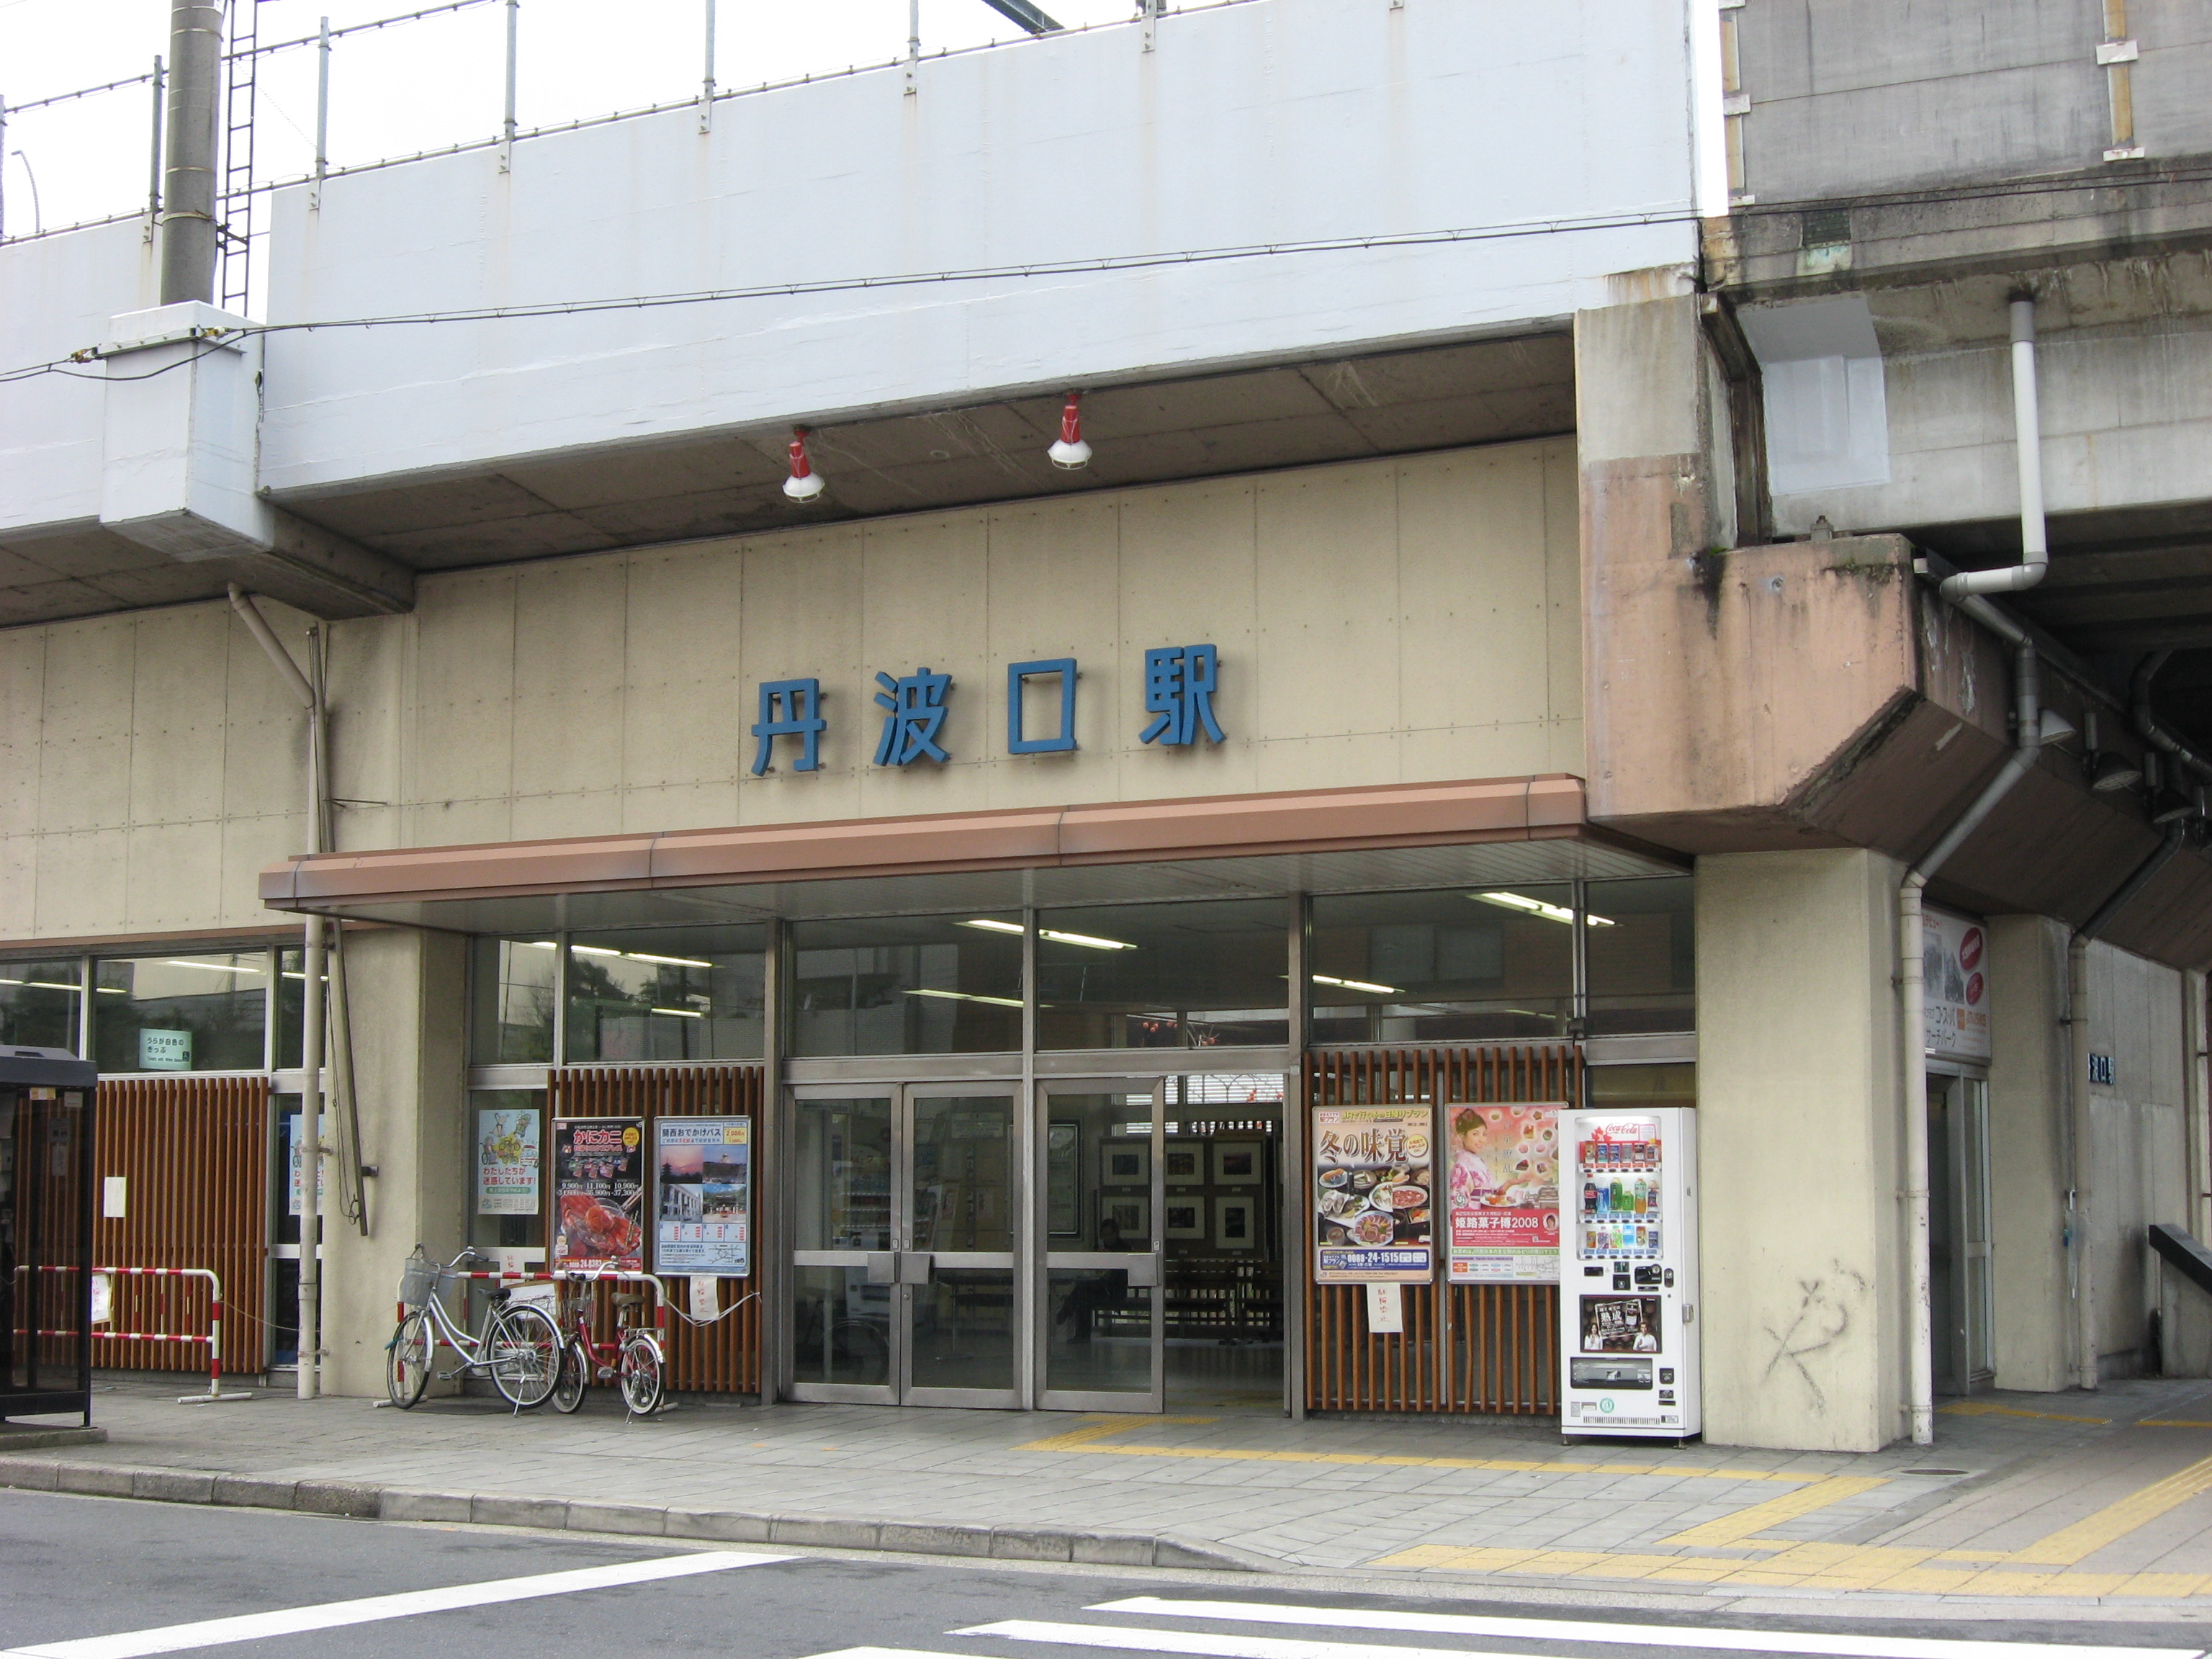 https://upload.wikimedia.org/wikipedia/commons/1/1d/JR_Tambaguchi_Station.jpg